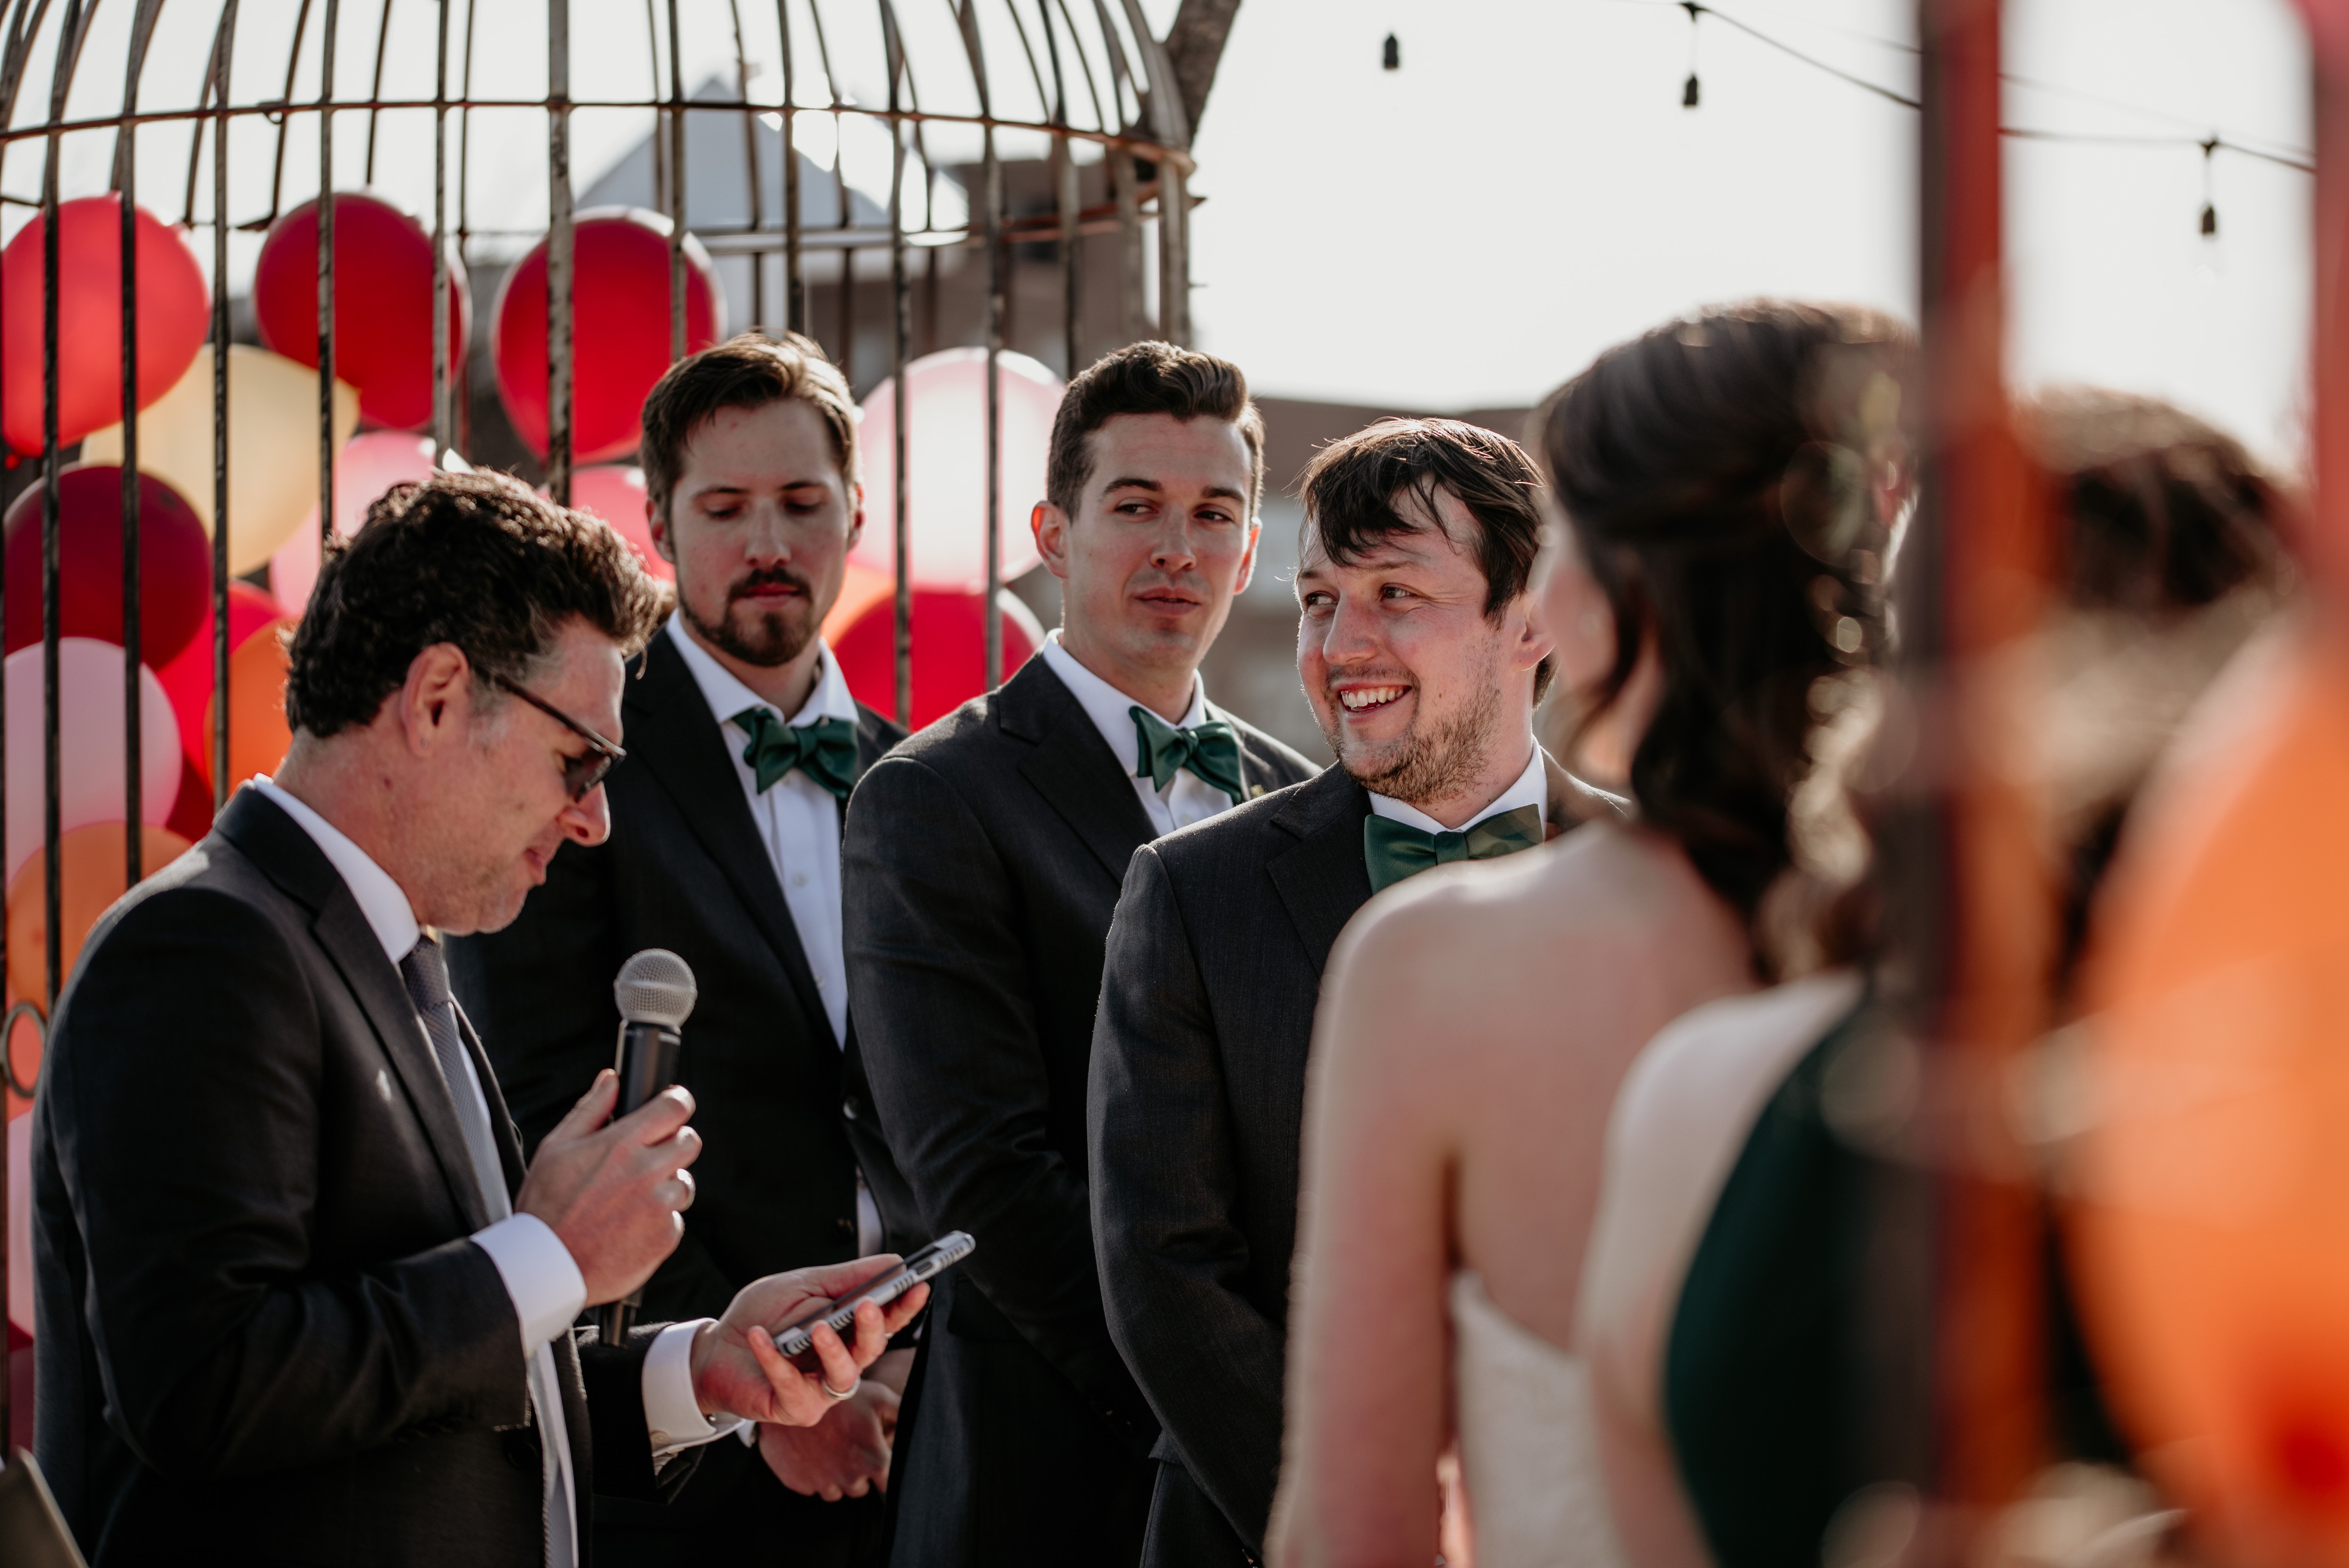 Real ceremony moments